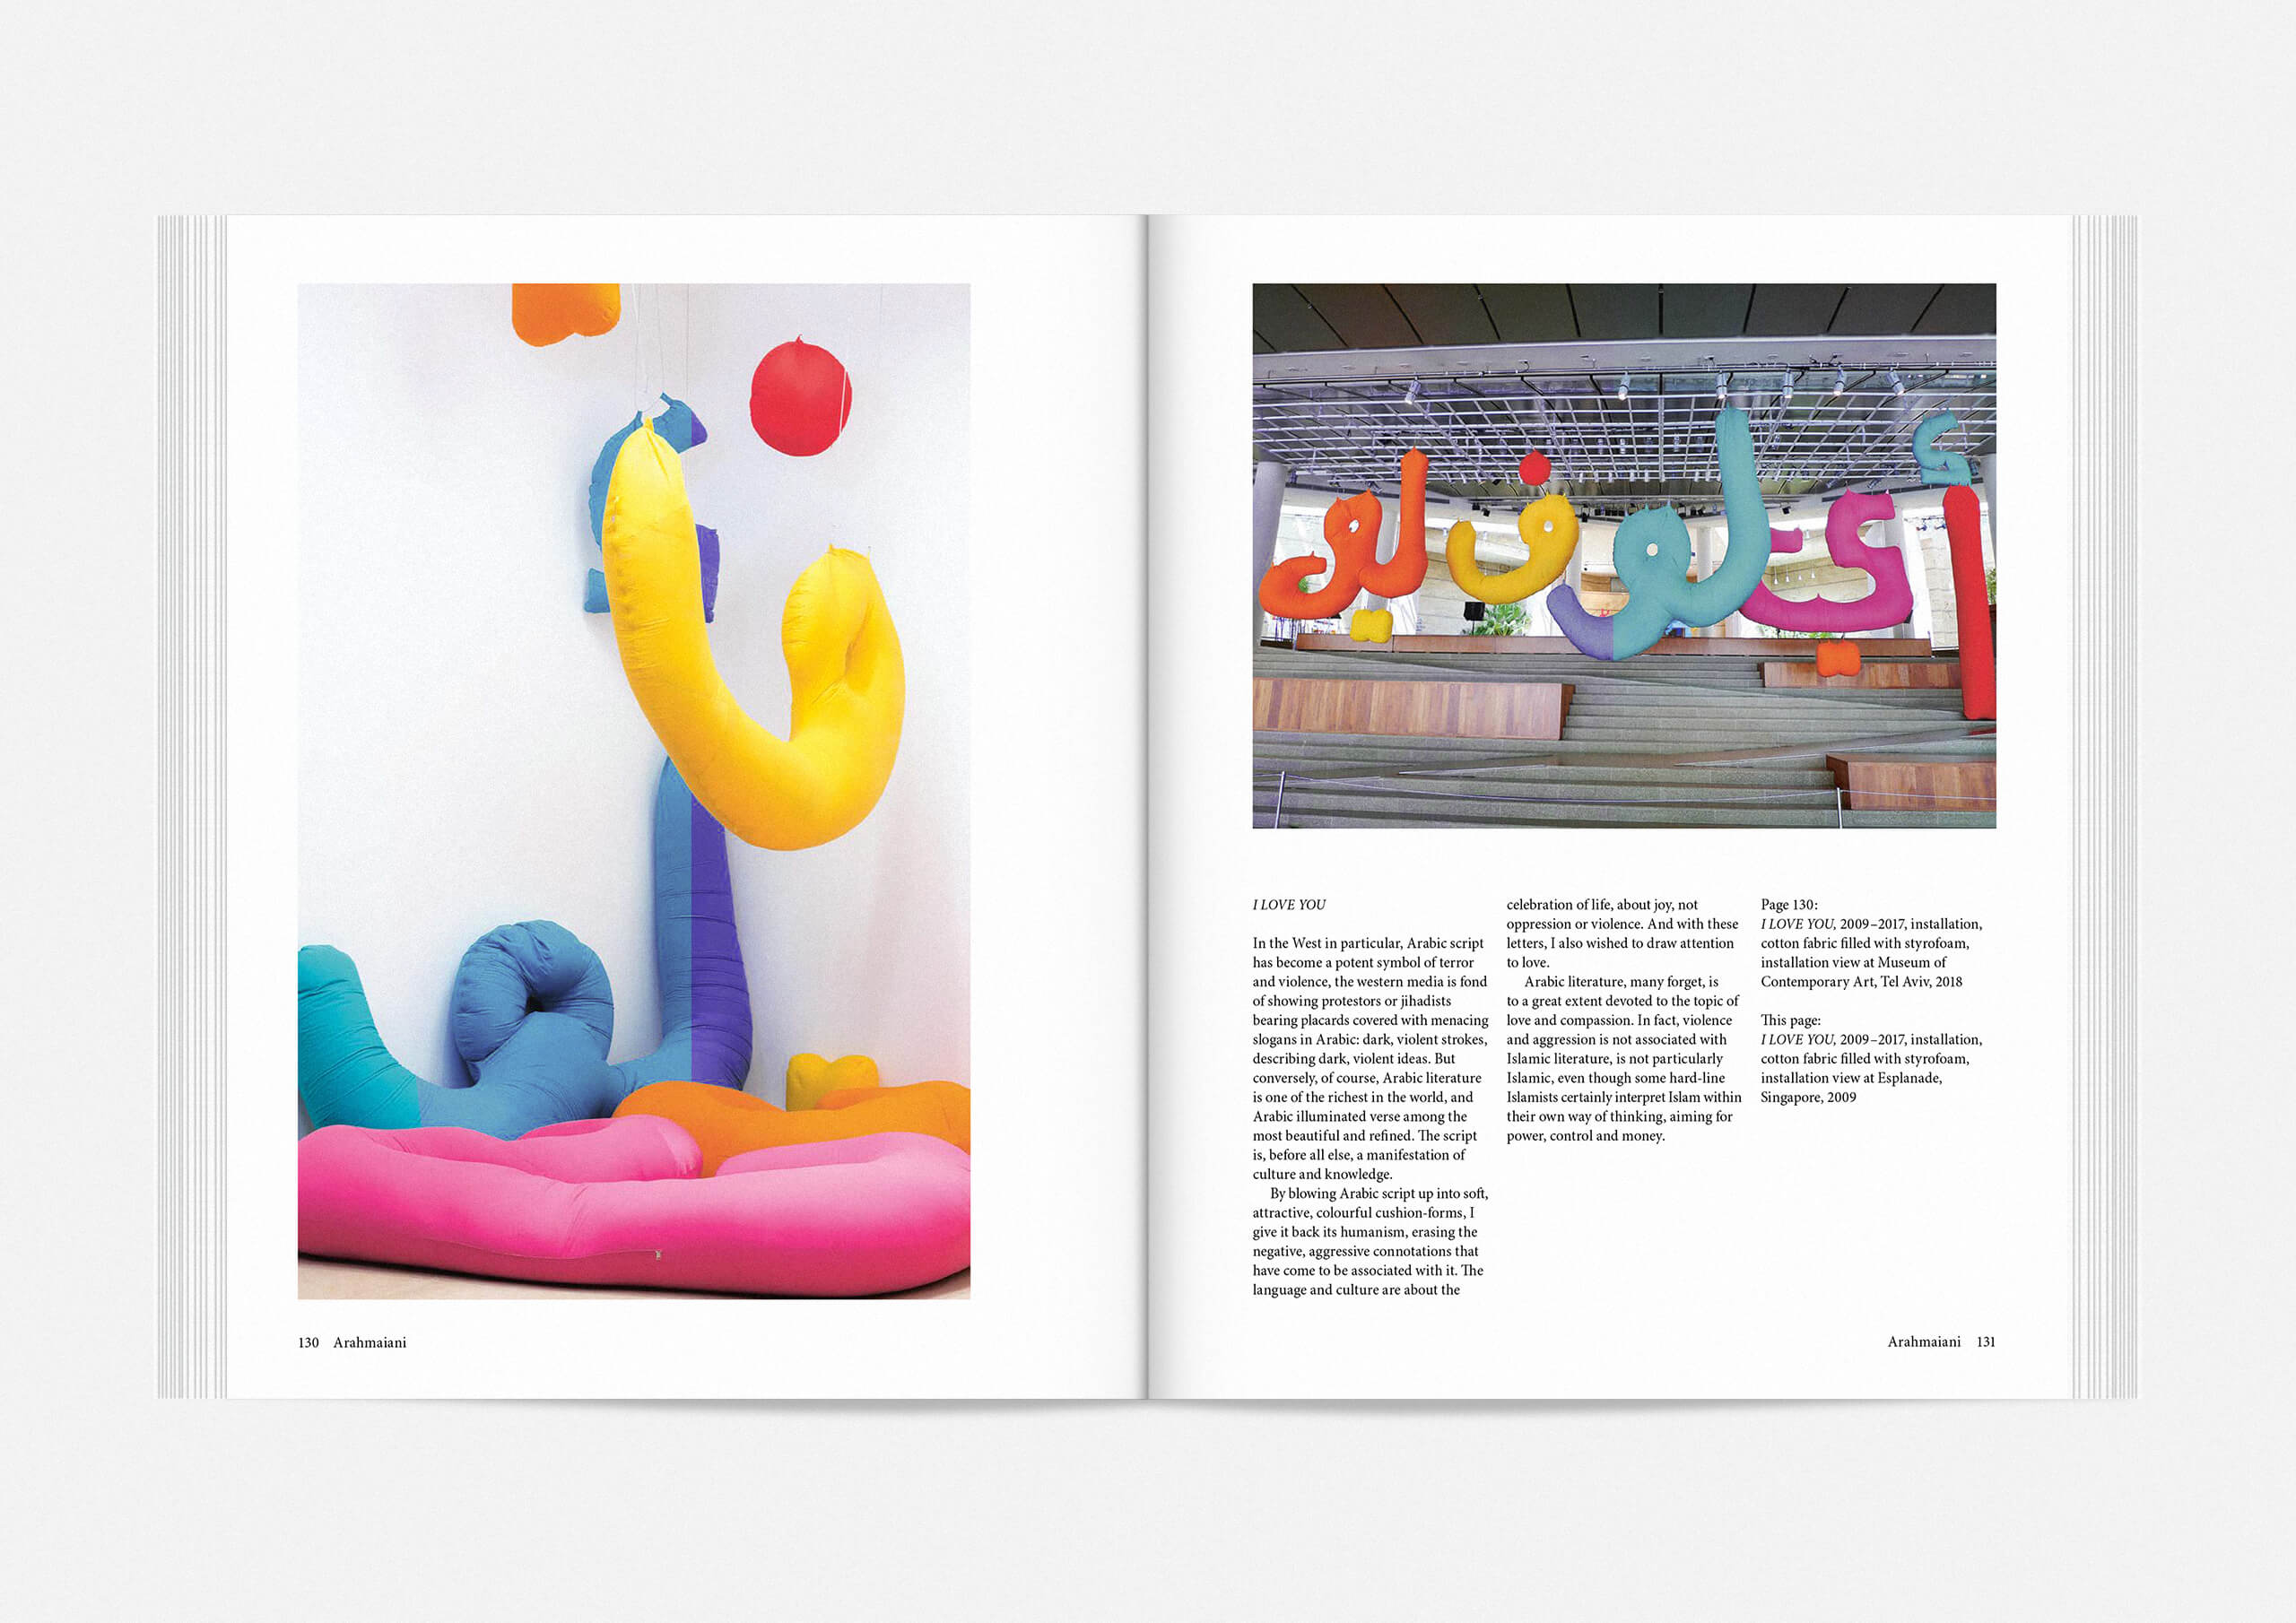 http://neuegestaltung.de/media/pages/clients/protocollum-issue-no-05/a1c3120394-1597415140/protocollum-5-page-130131-ng.jpg